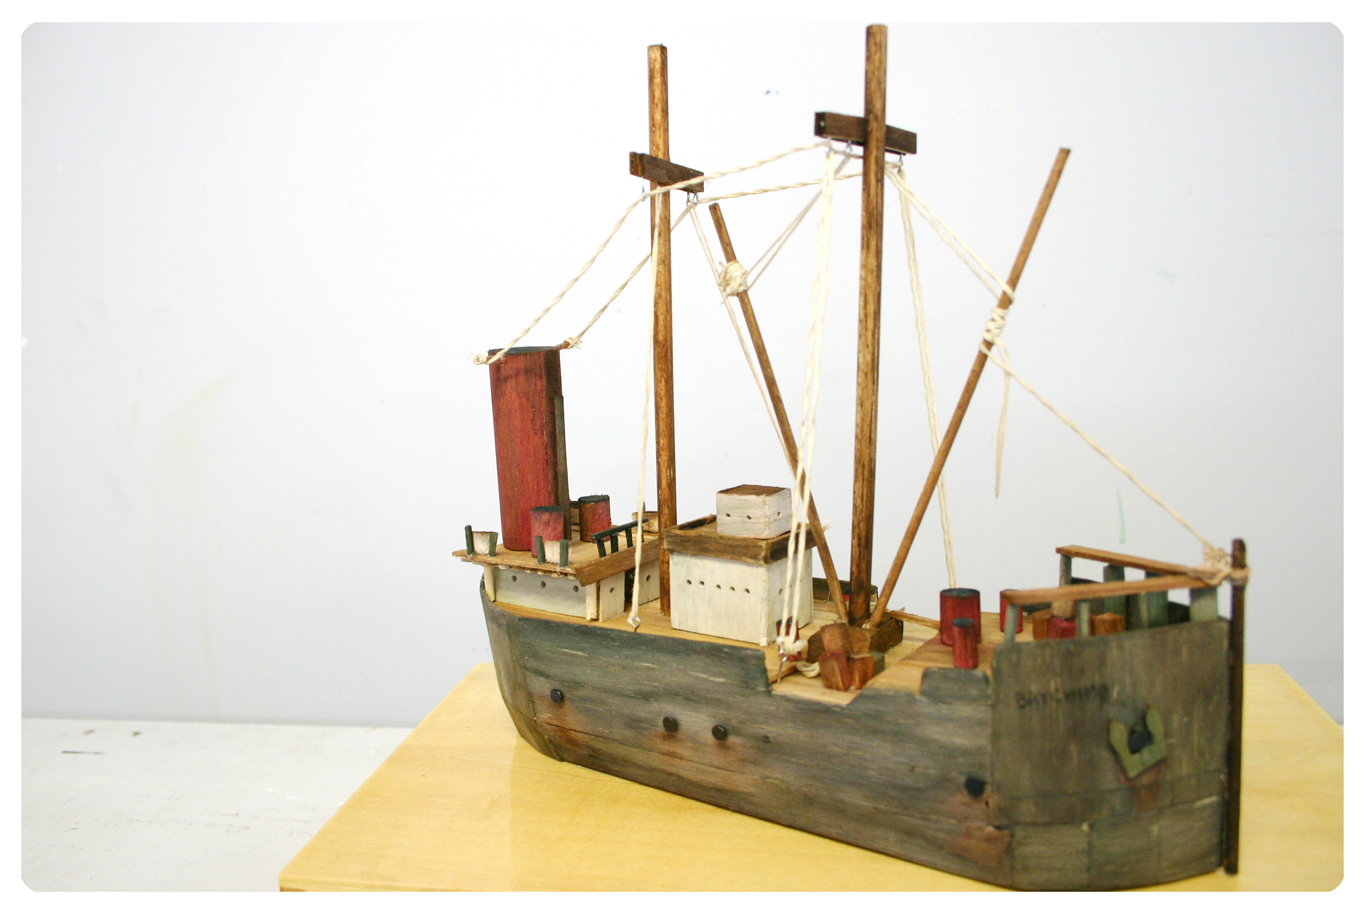 Lucy Satzewich, Model Ship, Ghost Ships, Story Telling, Wood, Sculpture, Artist in Residents, Emerging Canadian Artist